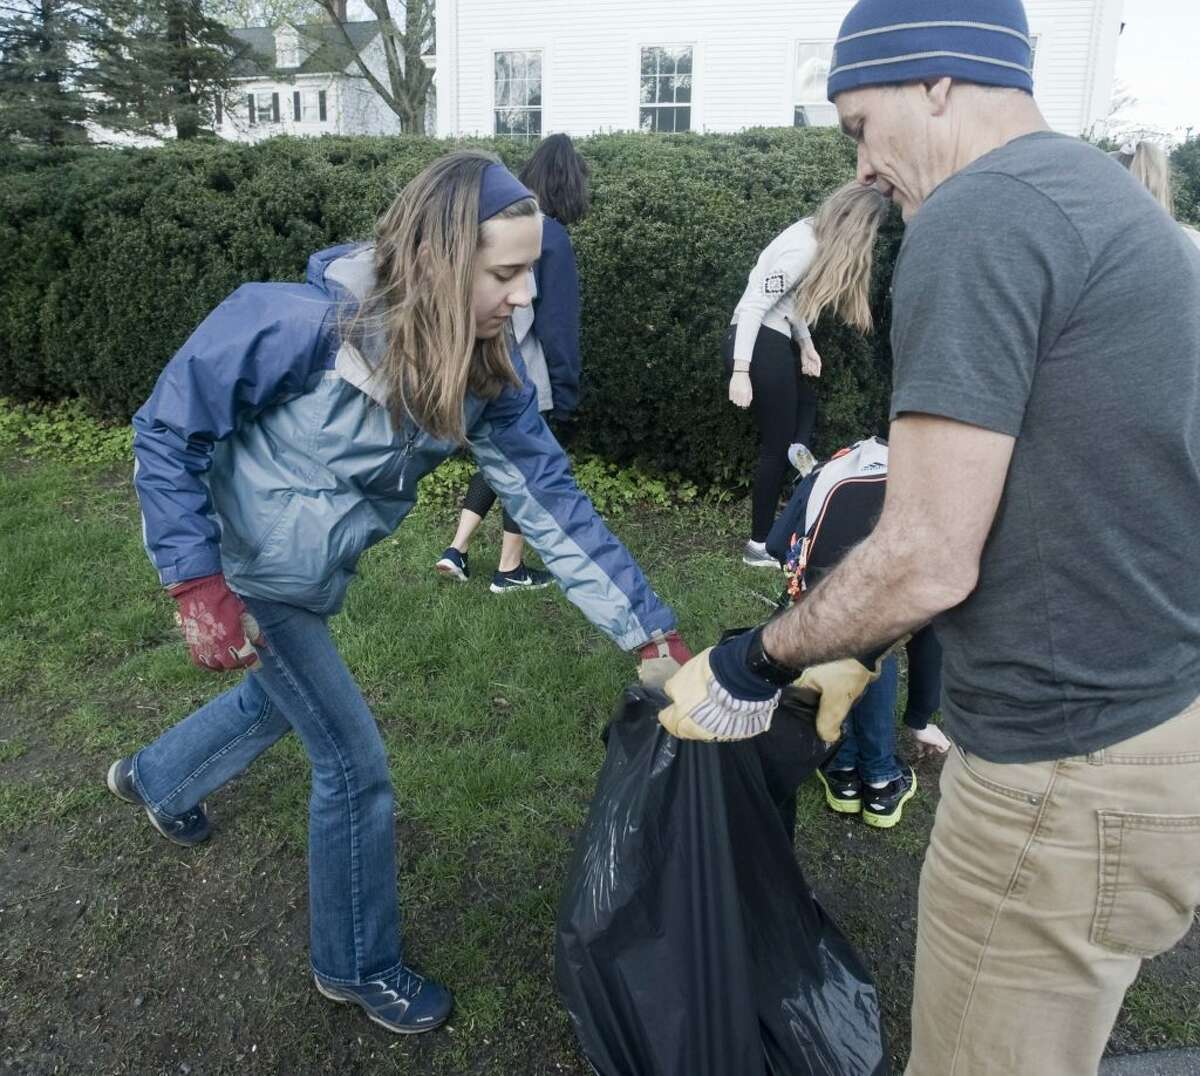 Ninth-grader Della Finchan puts collected garbage in the bag held by Sean Hogan. Finchan and Hogan picked up trash in front of St. Stephen Church on Main Street. - Scott Mullin photo